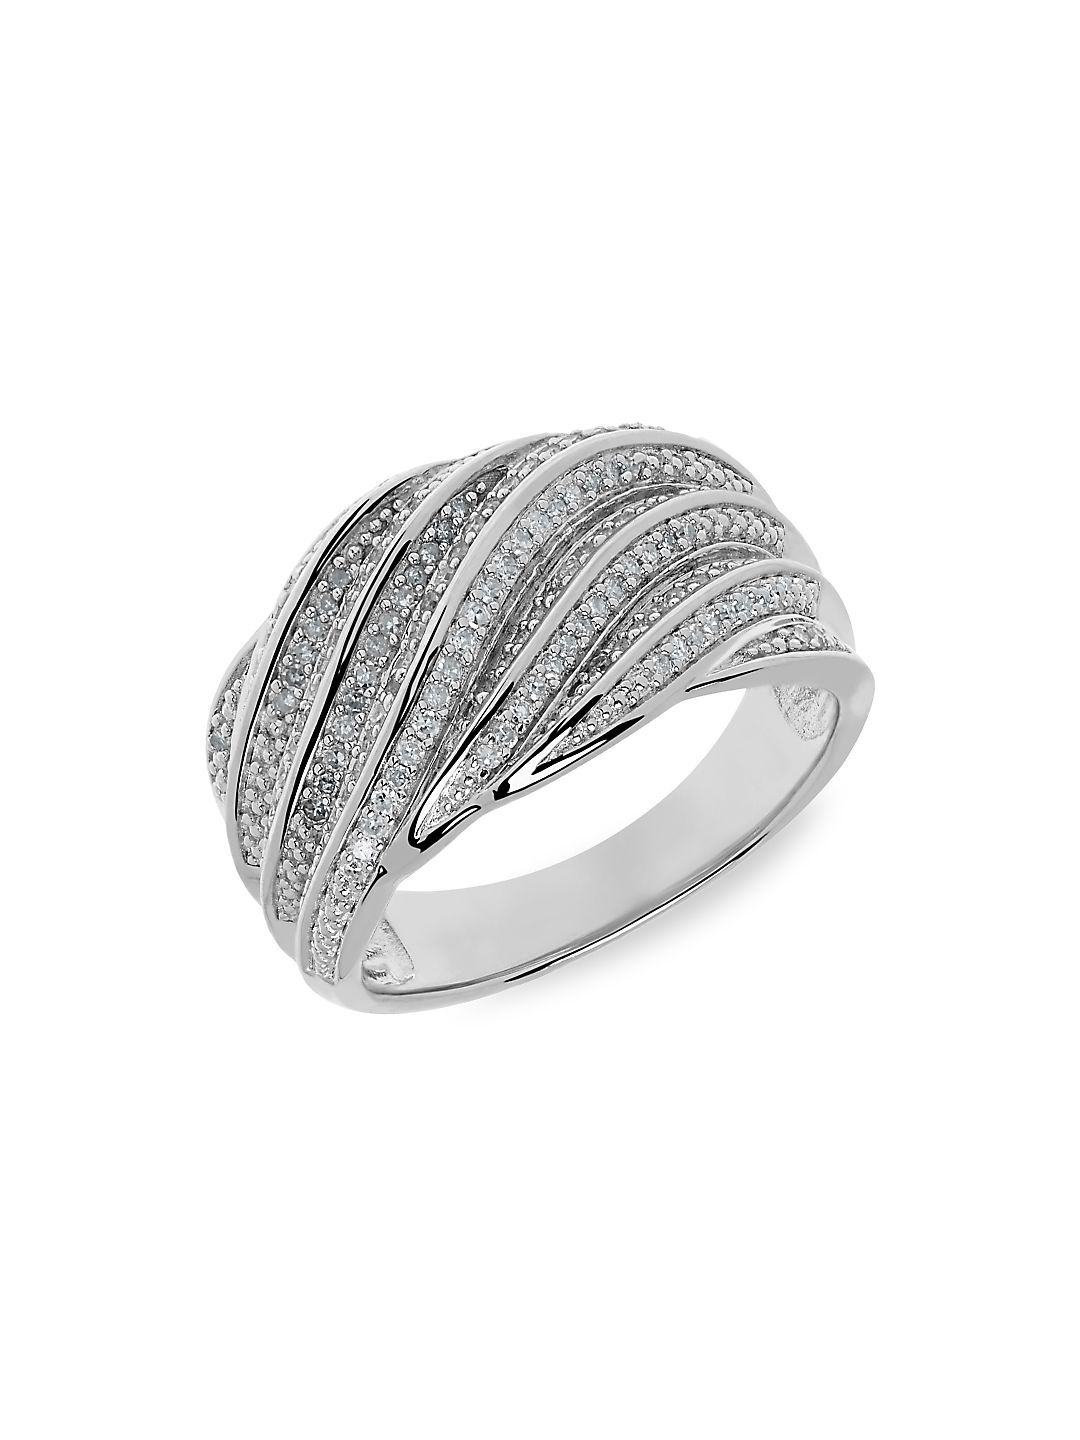 Sterling Silver and Diamond Twisted Ring